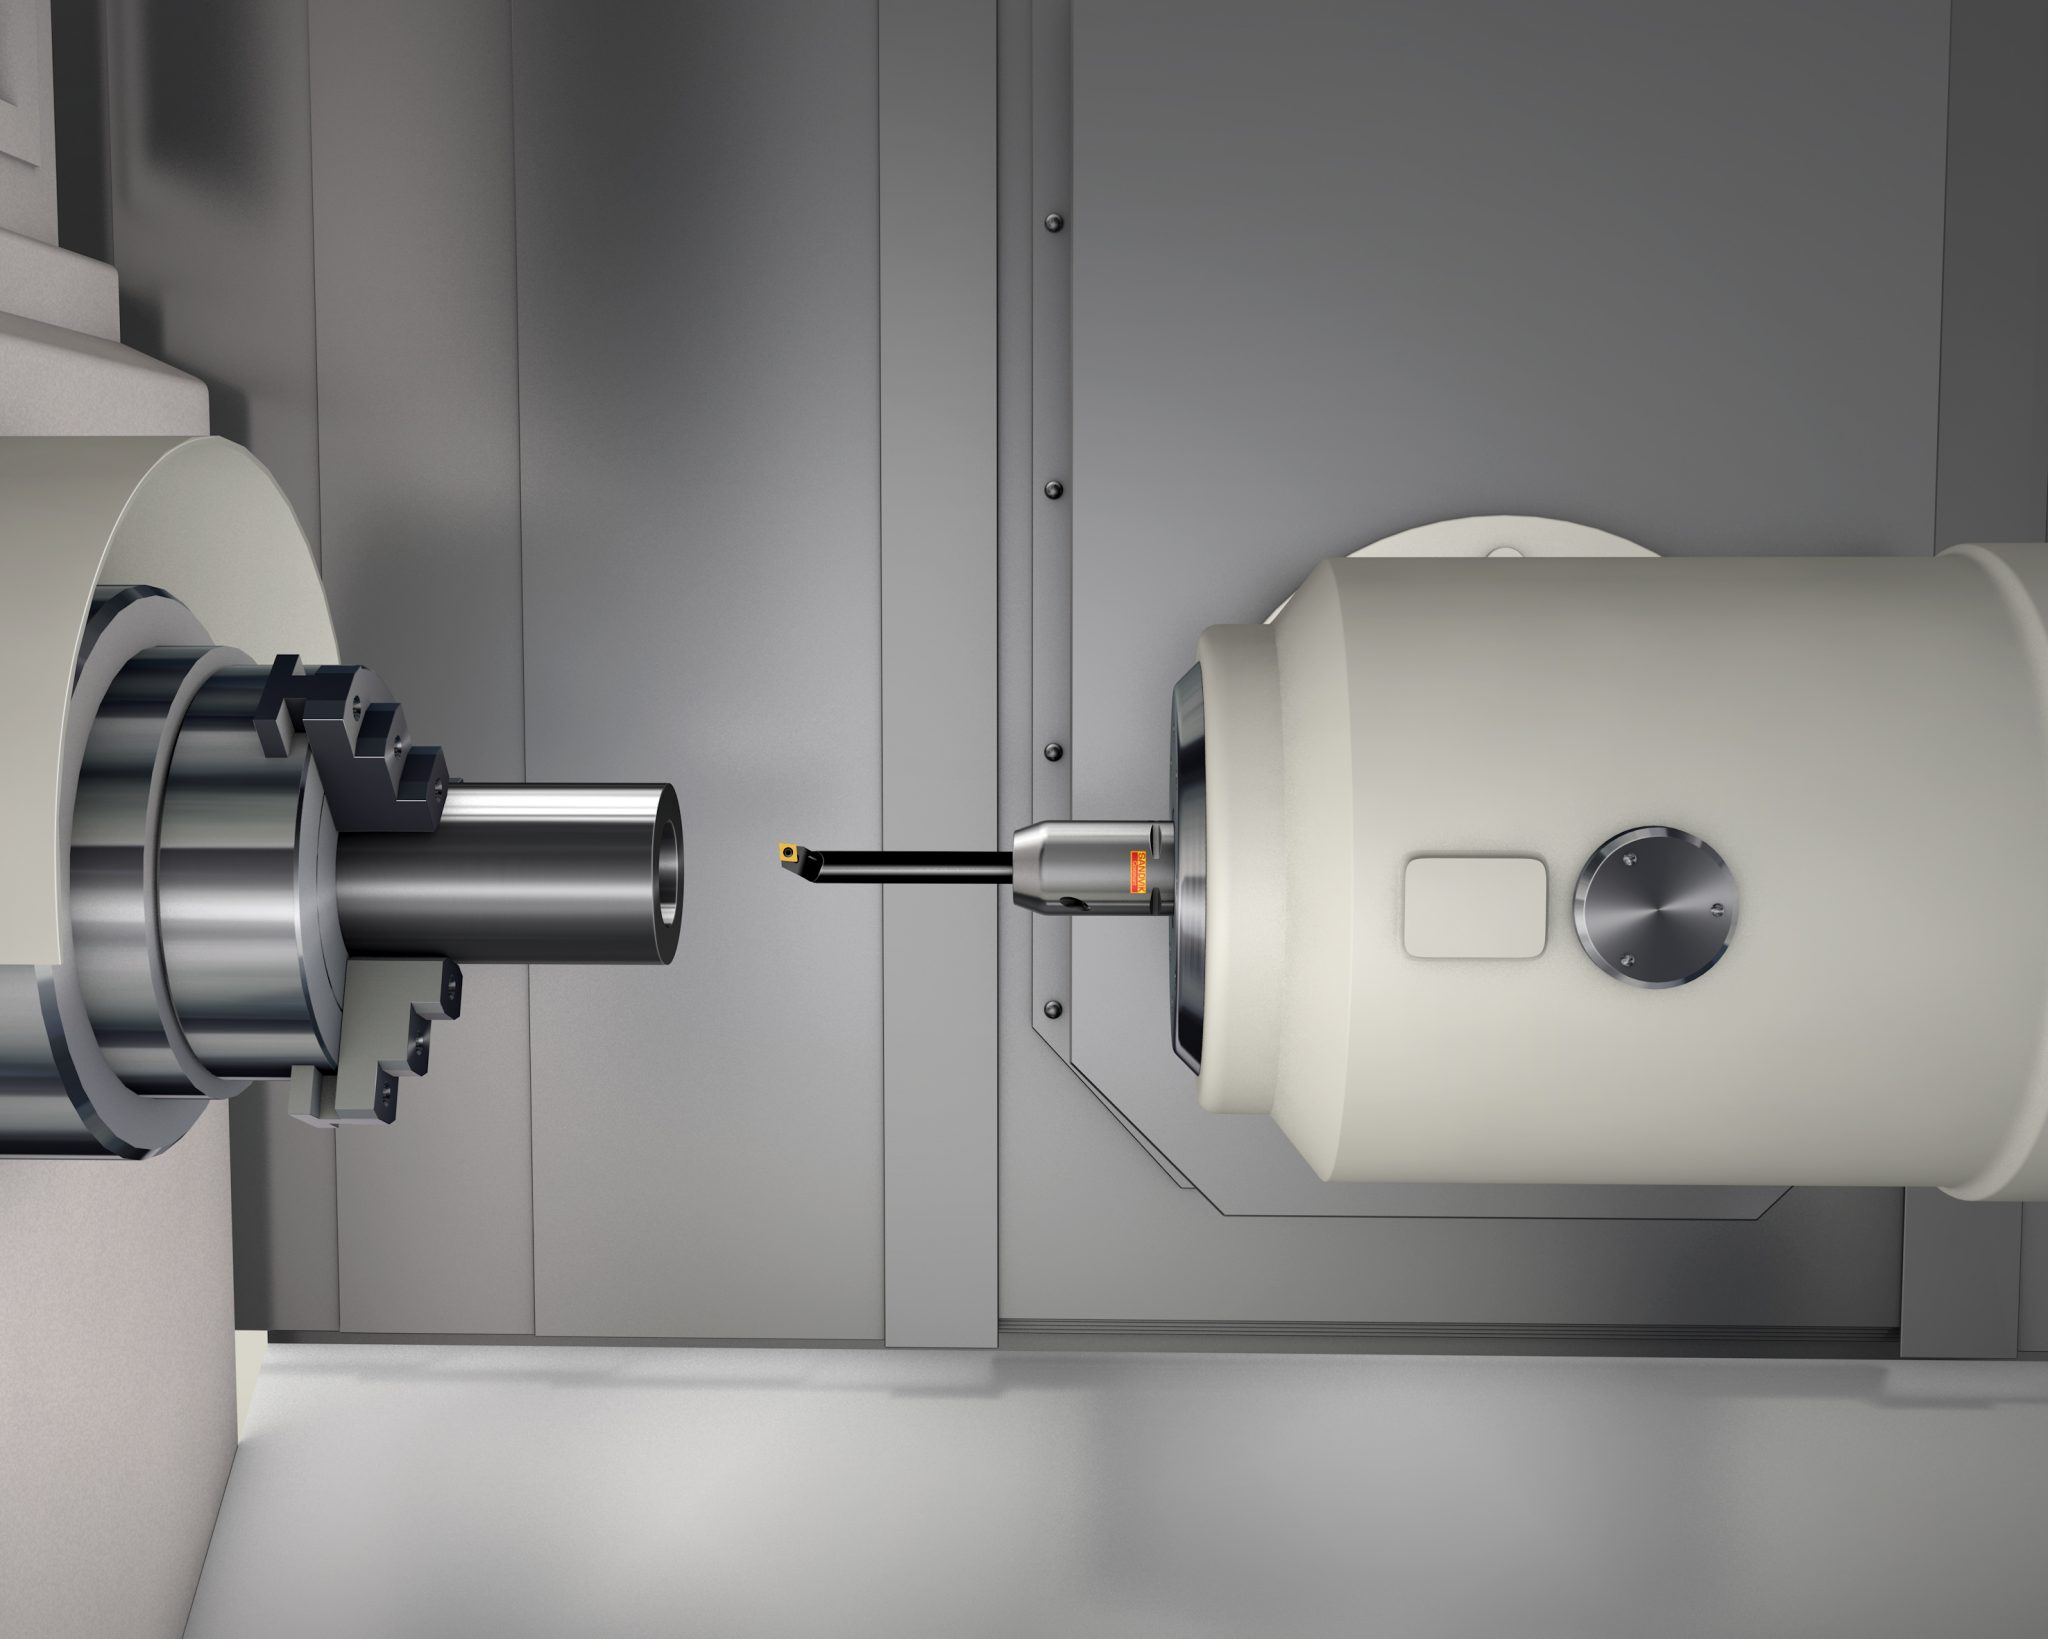 CoroChuck ® 935 Offers a Secure Influence on Machining